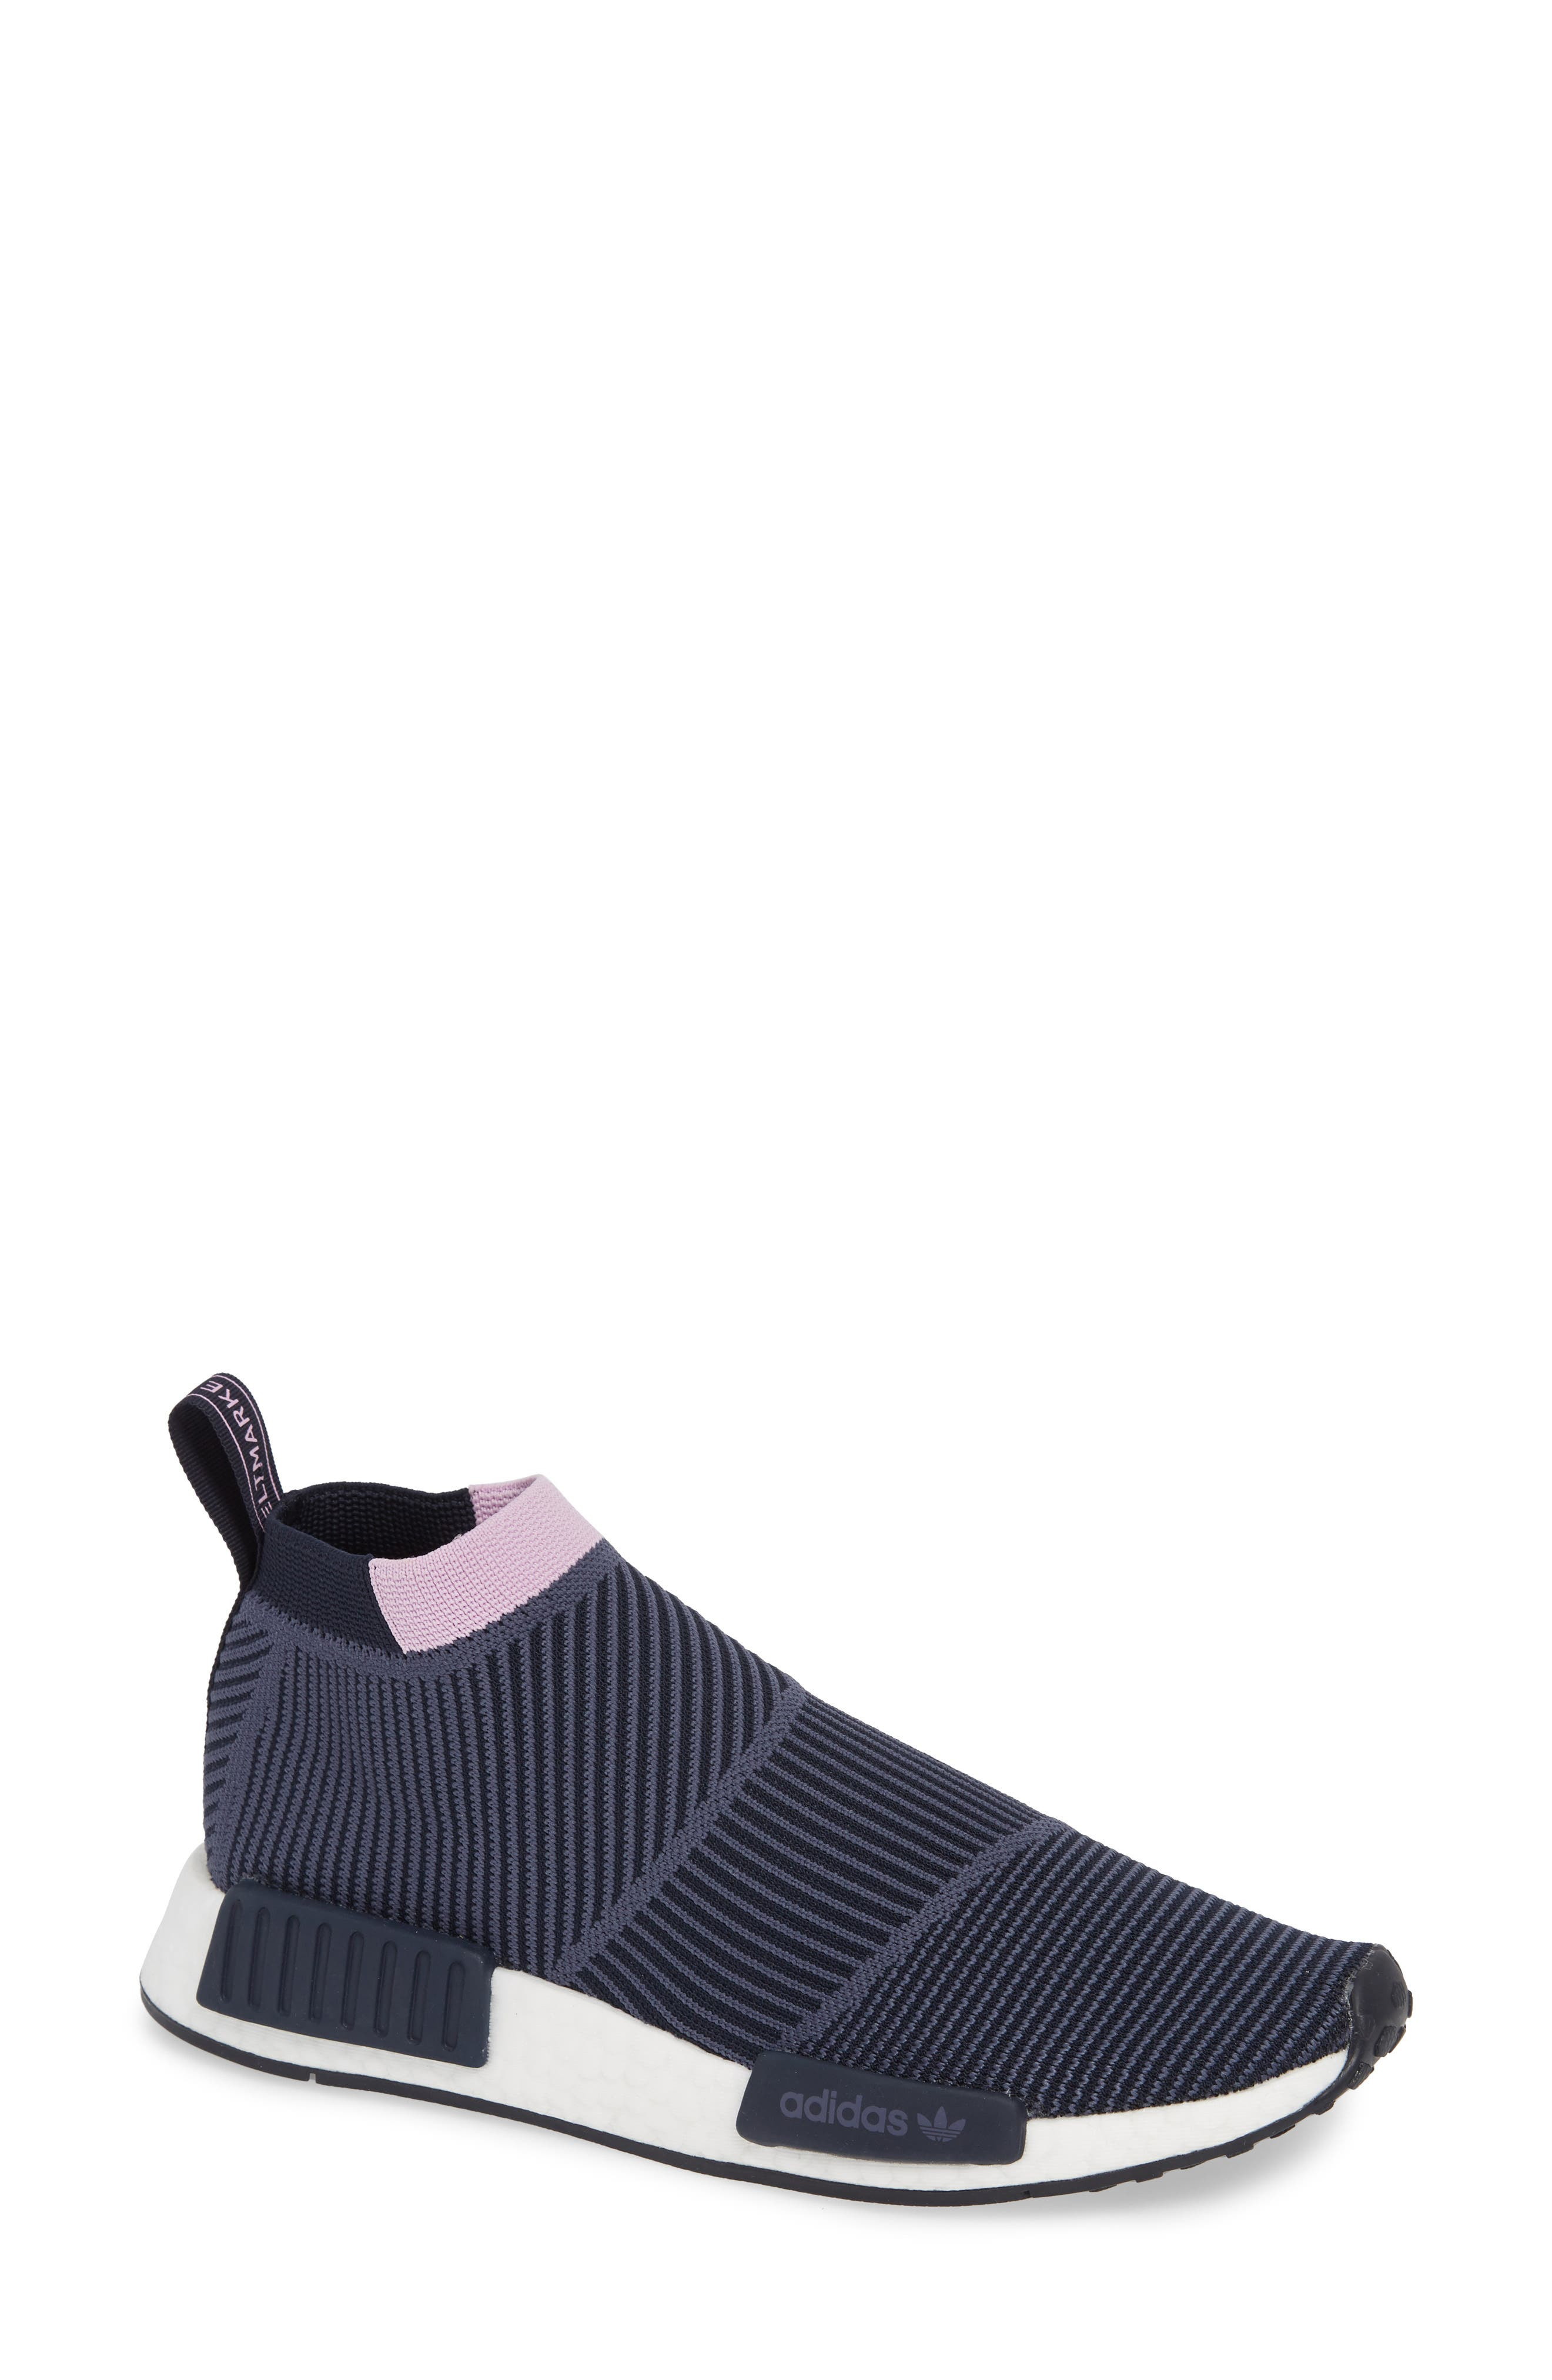 NMD_CS1 Primeknit Sneaker,                             Main thumbnail 1, color,                             LEGEND INK/ CLEAR LILAC